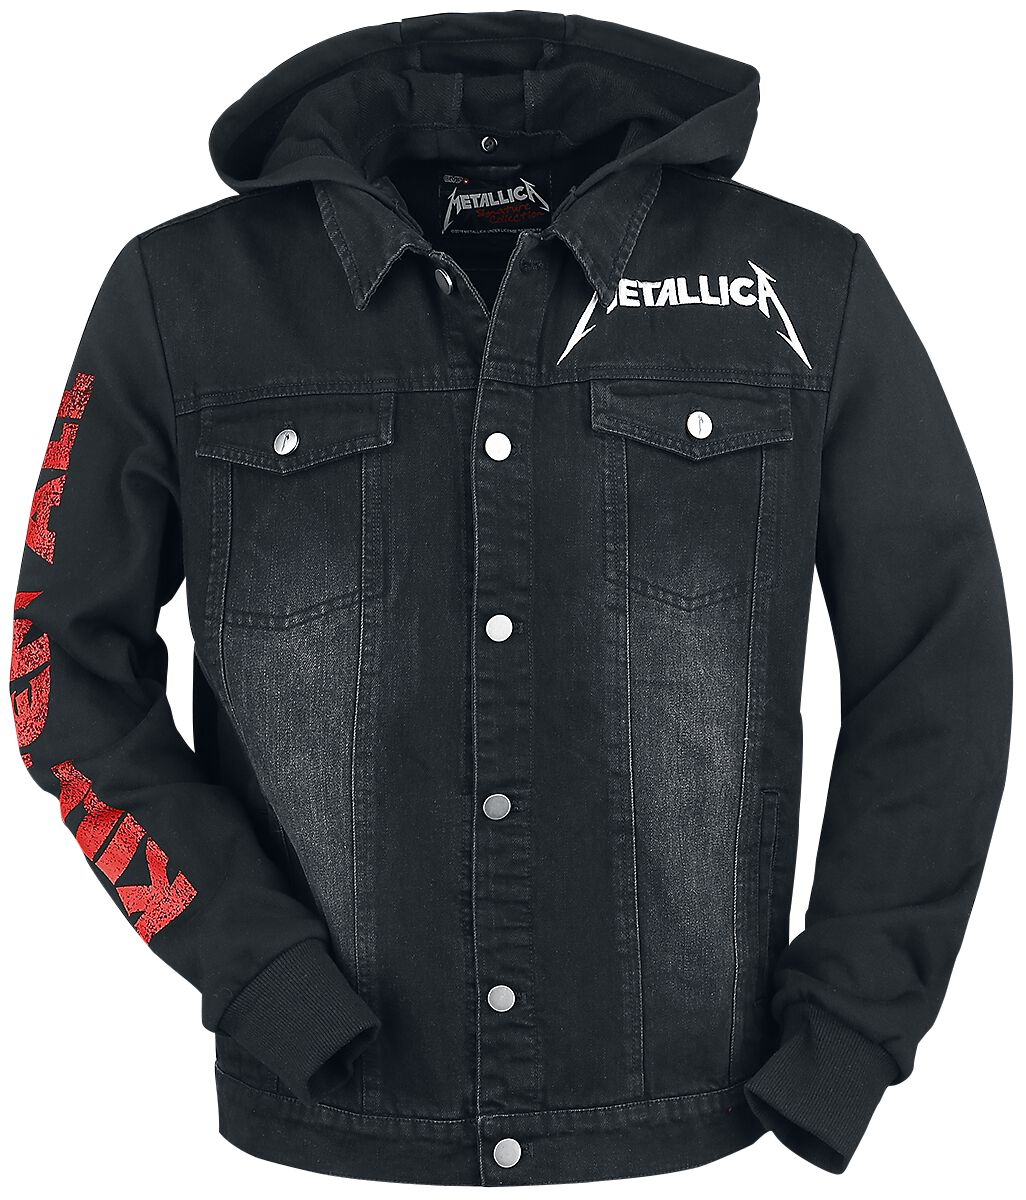 Emp Signature Collection Metallica Jeansjacke Emp